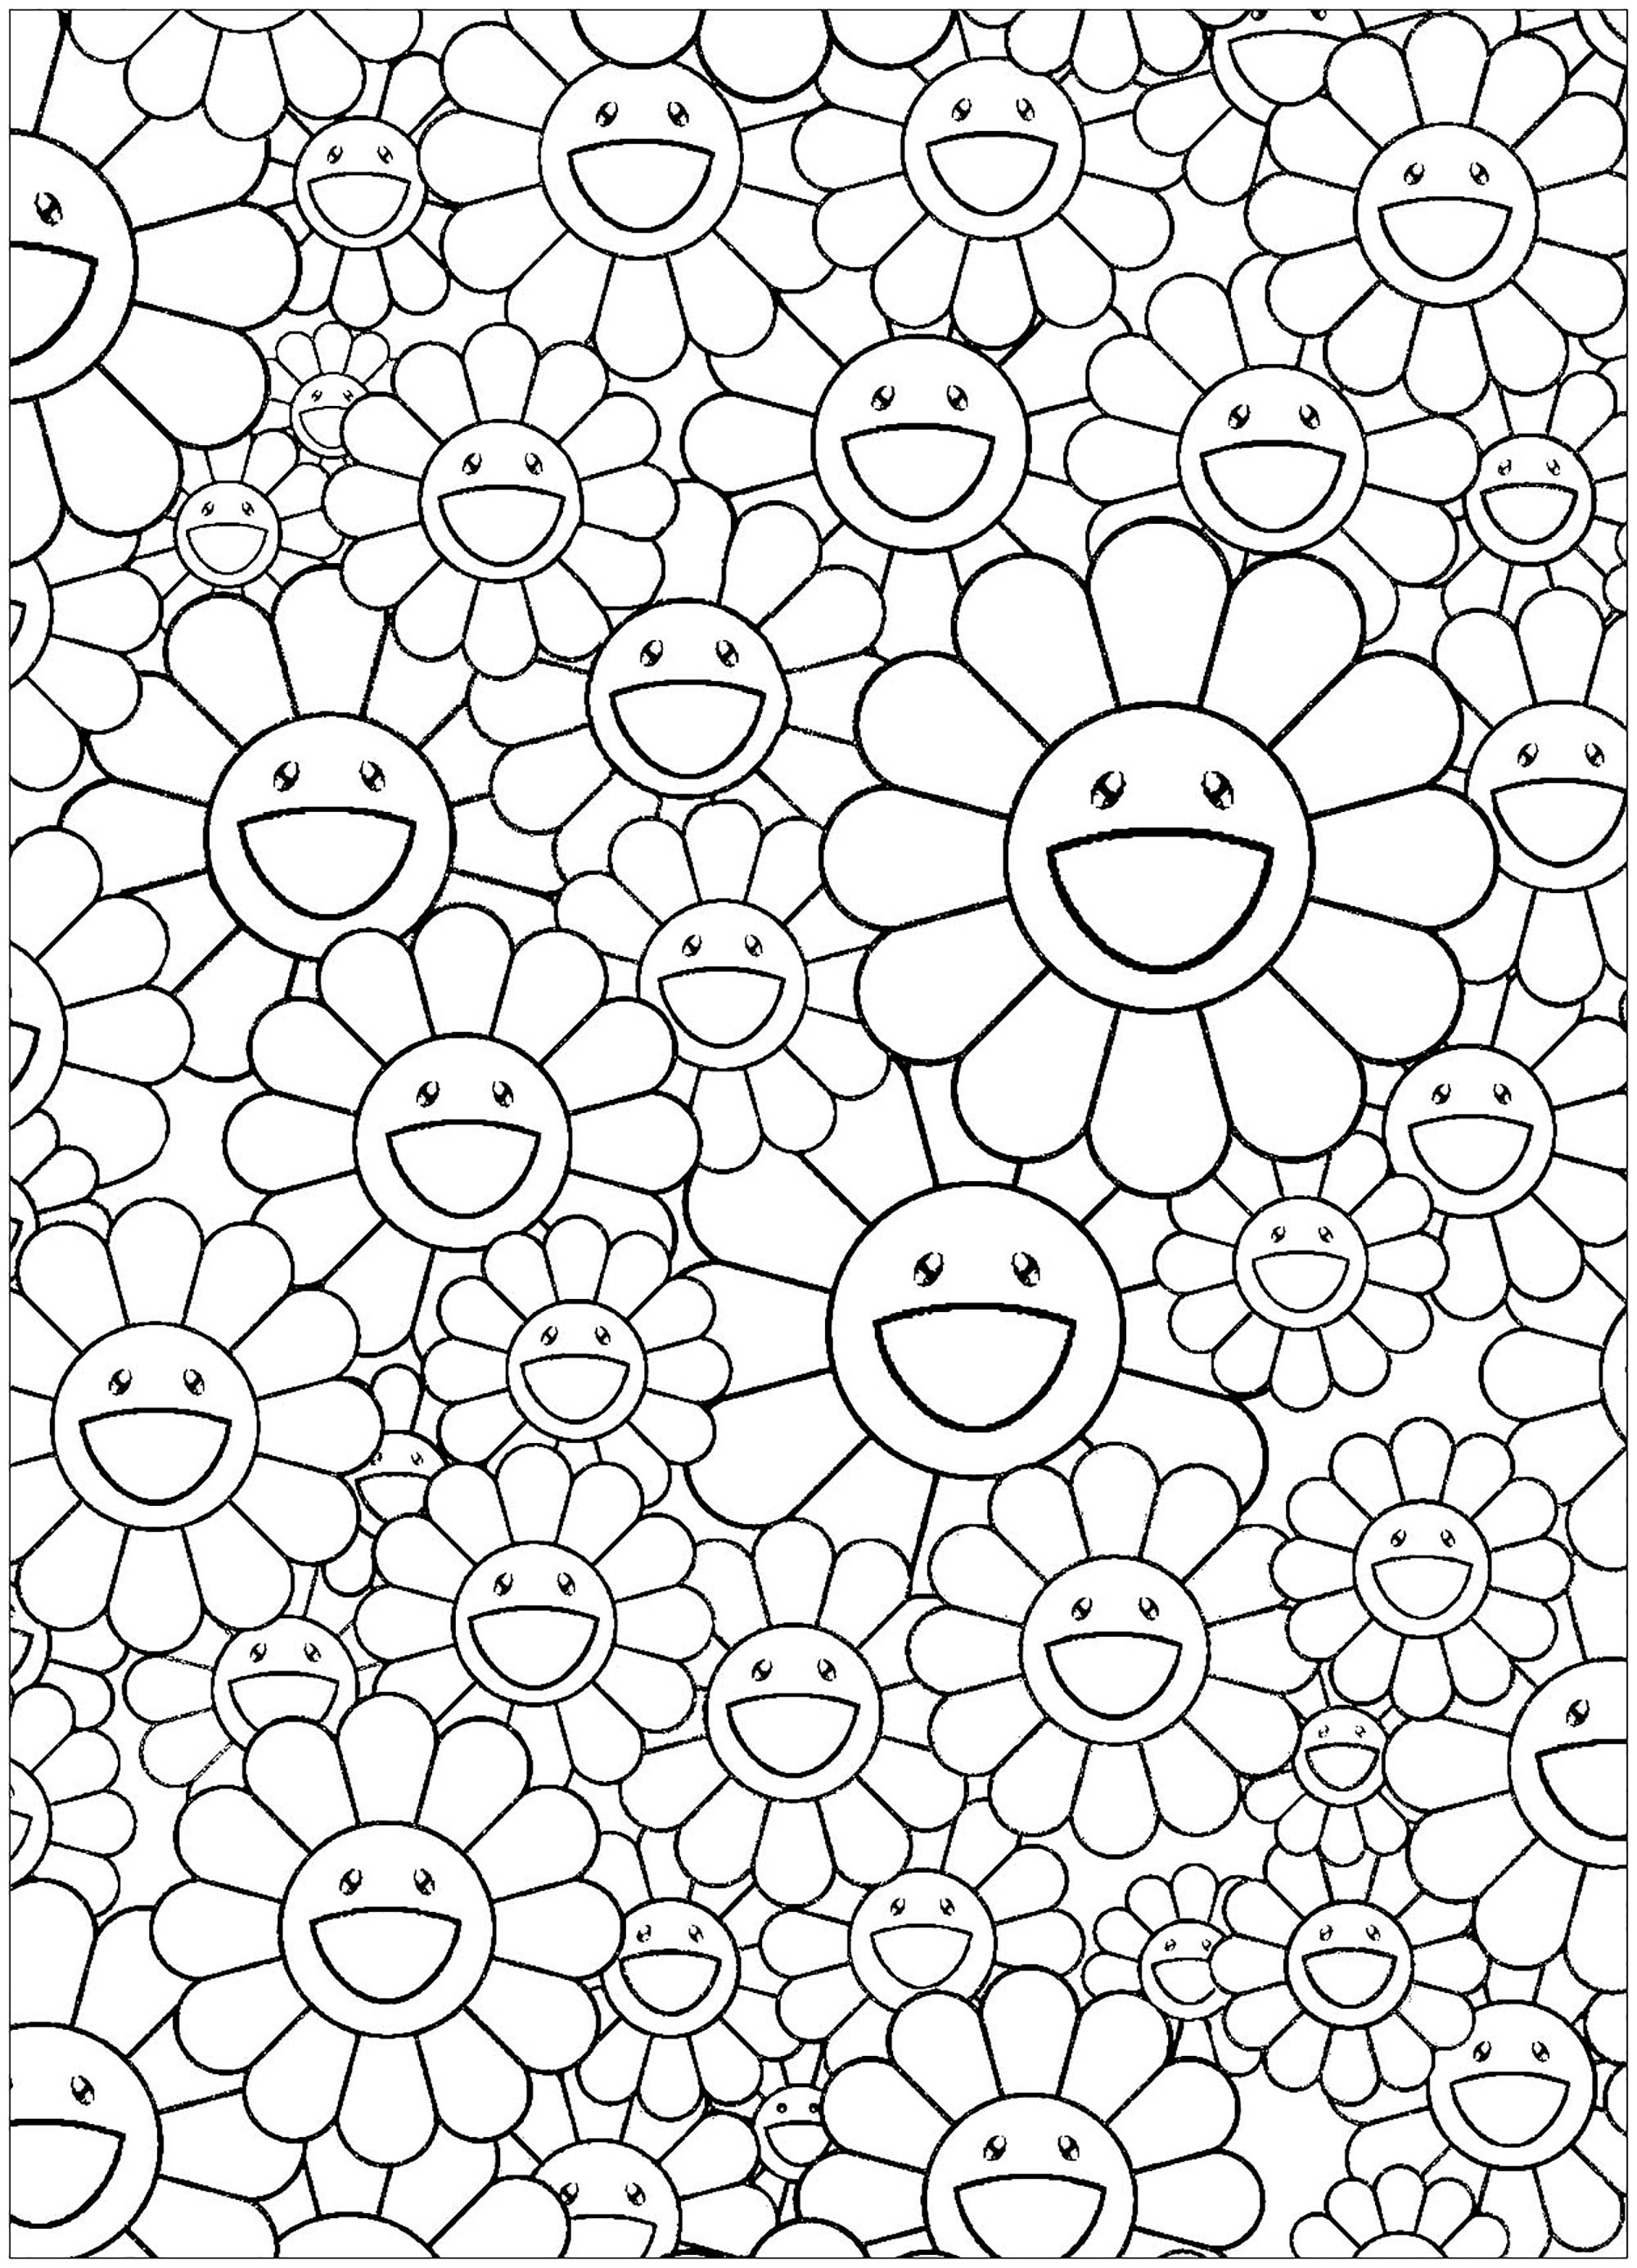 Coloring page inspired by a work by Japanese artist Takashi Murakami (style : Superflat) - simple version. Happy flowers !